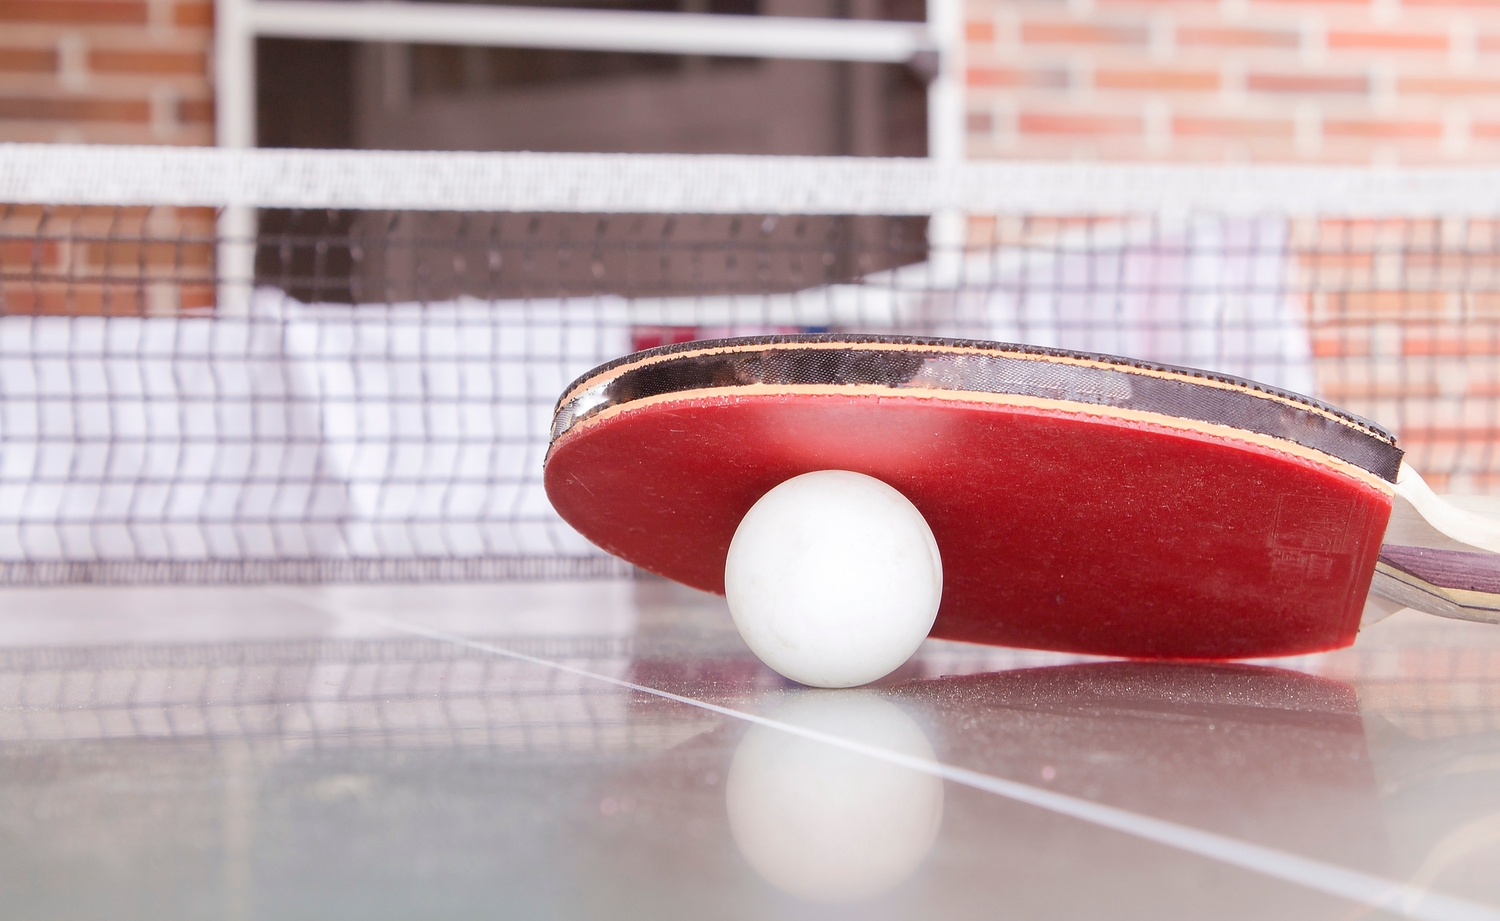 Red racquet resting on a white ping pong ball